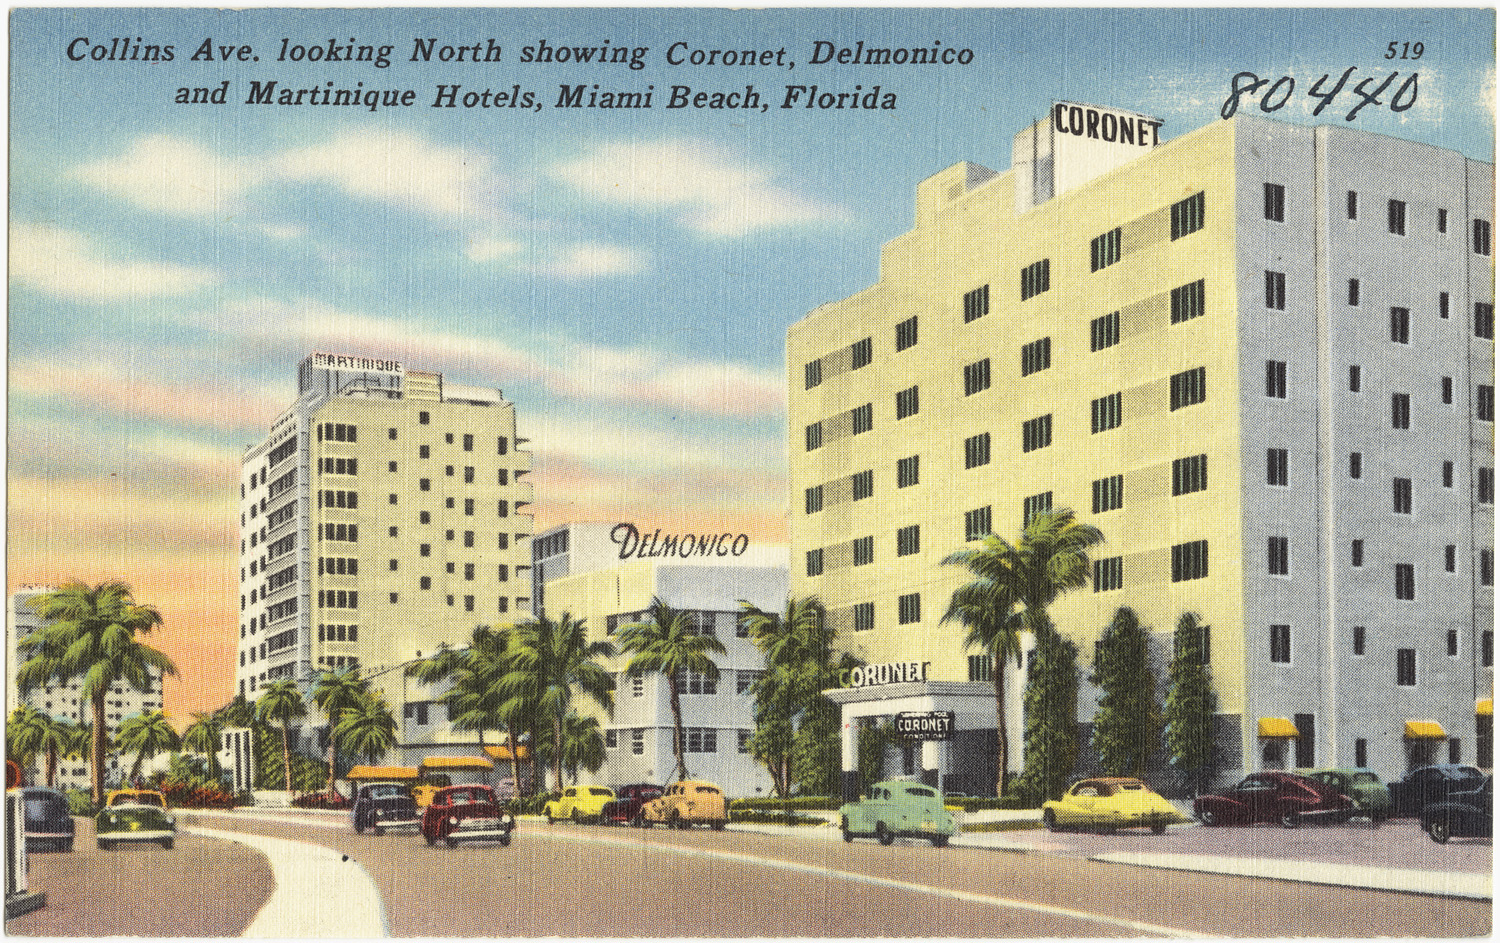 collins ave. looking north showing coronet, delmonico, and